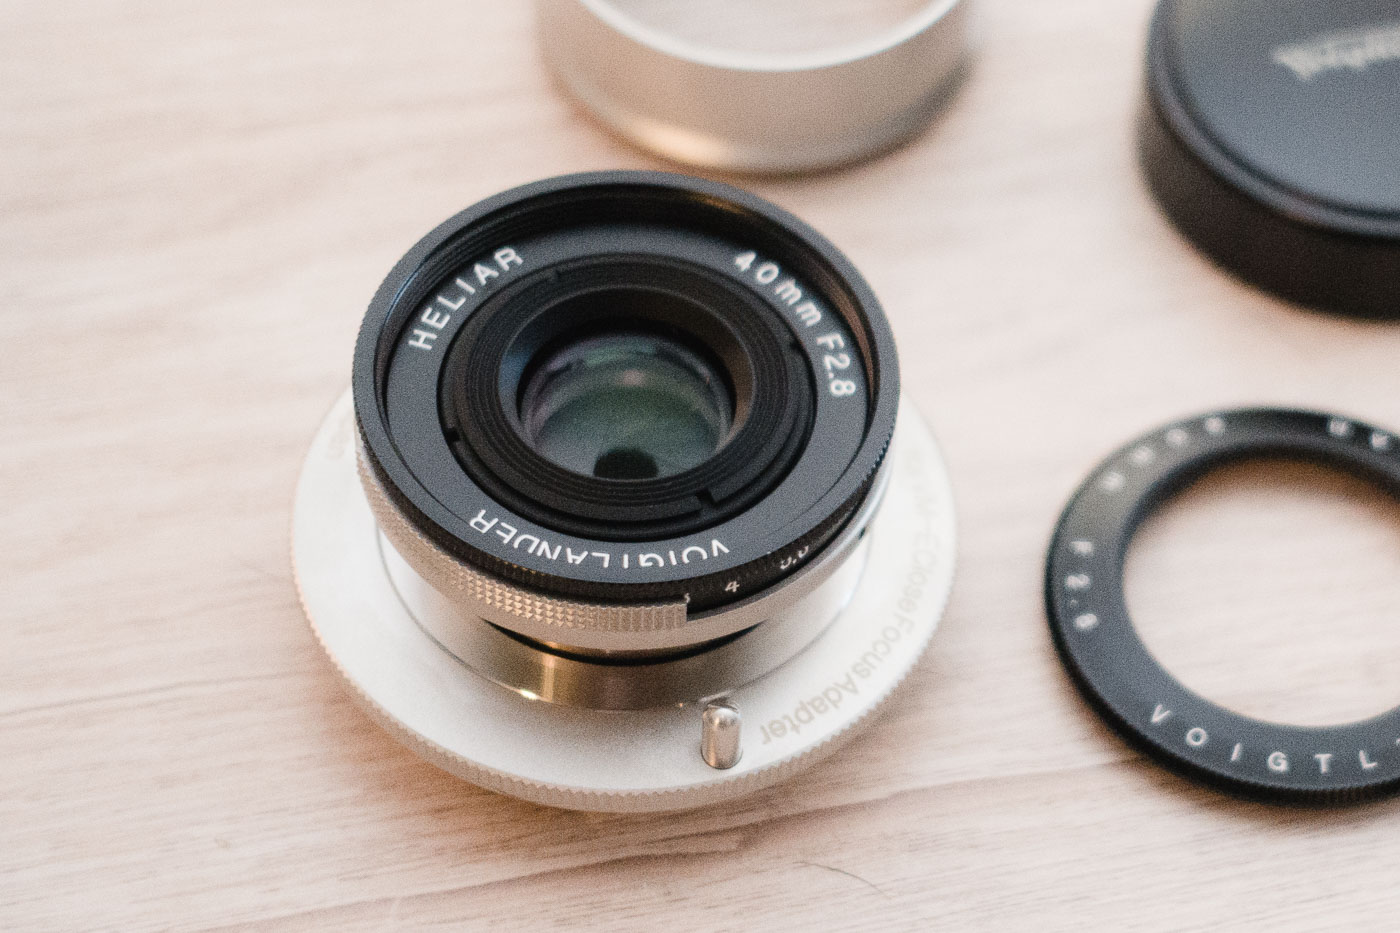 Voigtländer 40mm f/2.8 Heliar Lens Review